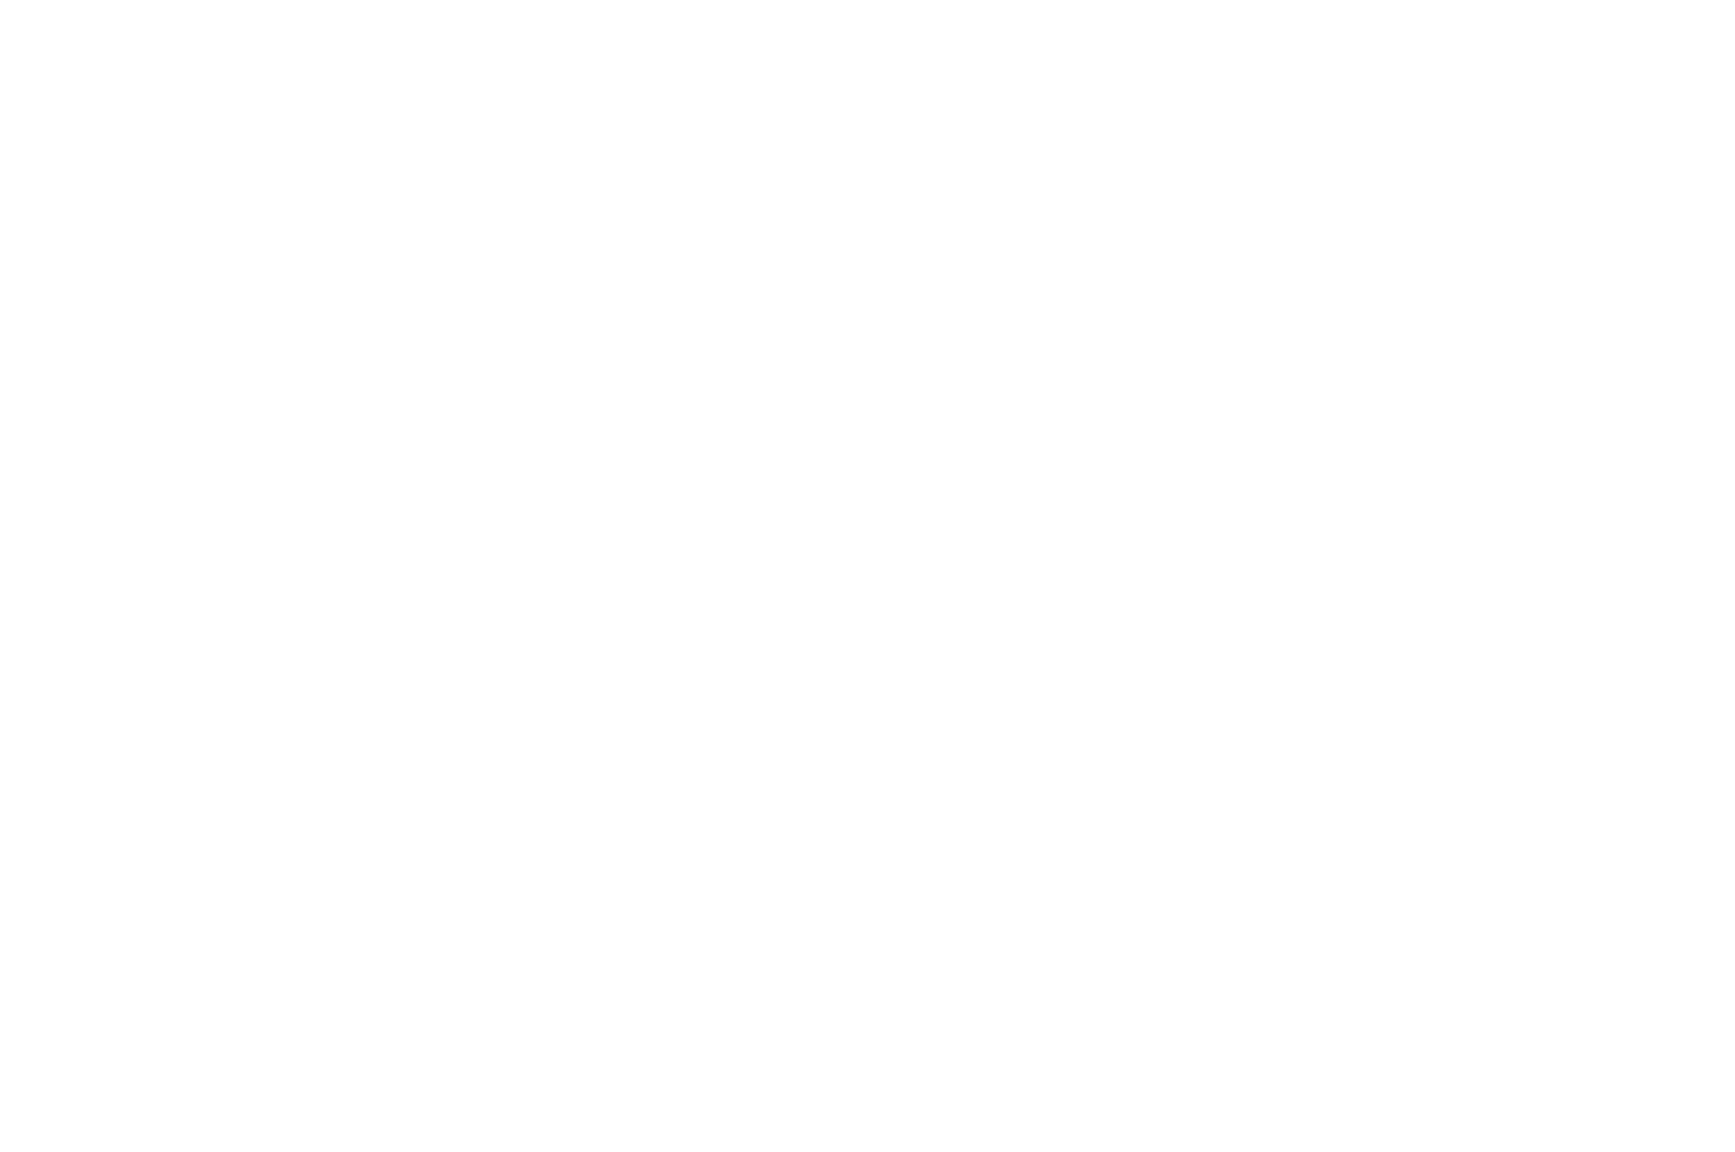 NOMINATED - BEST CINEMATOGRAPHY - THE MONKEY BREAD TREE AWARDS 2016 (1).png